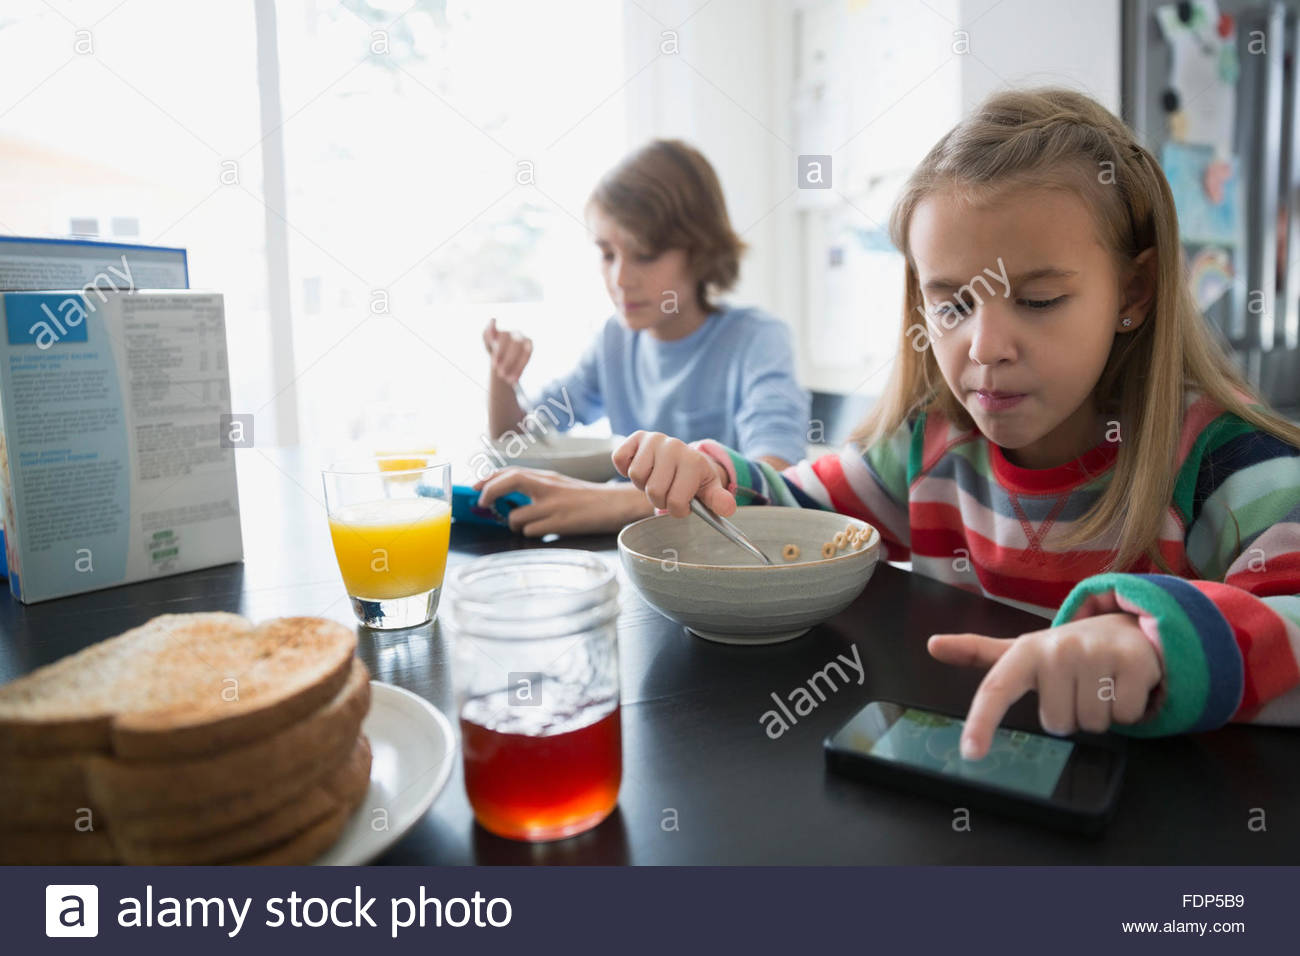 Brother and sister eating breakfast texting Photo Stock